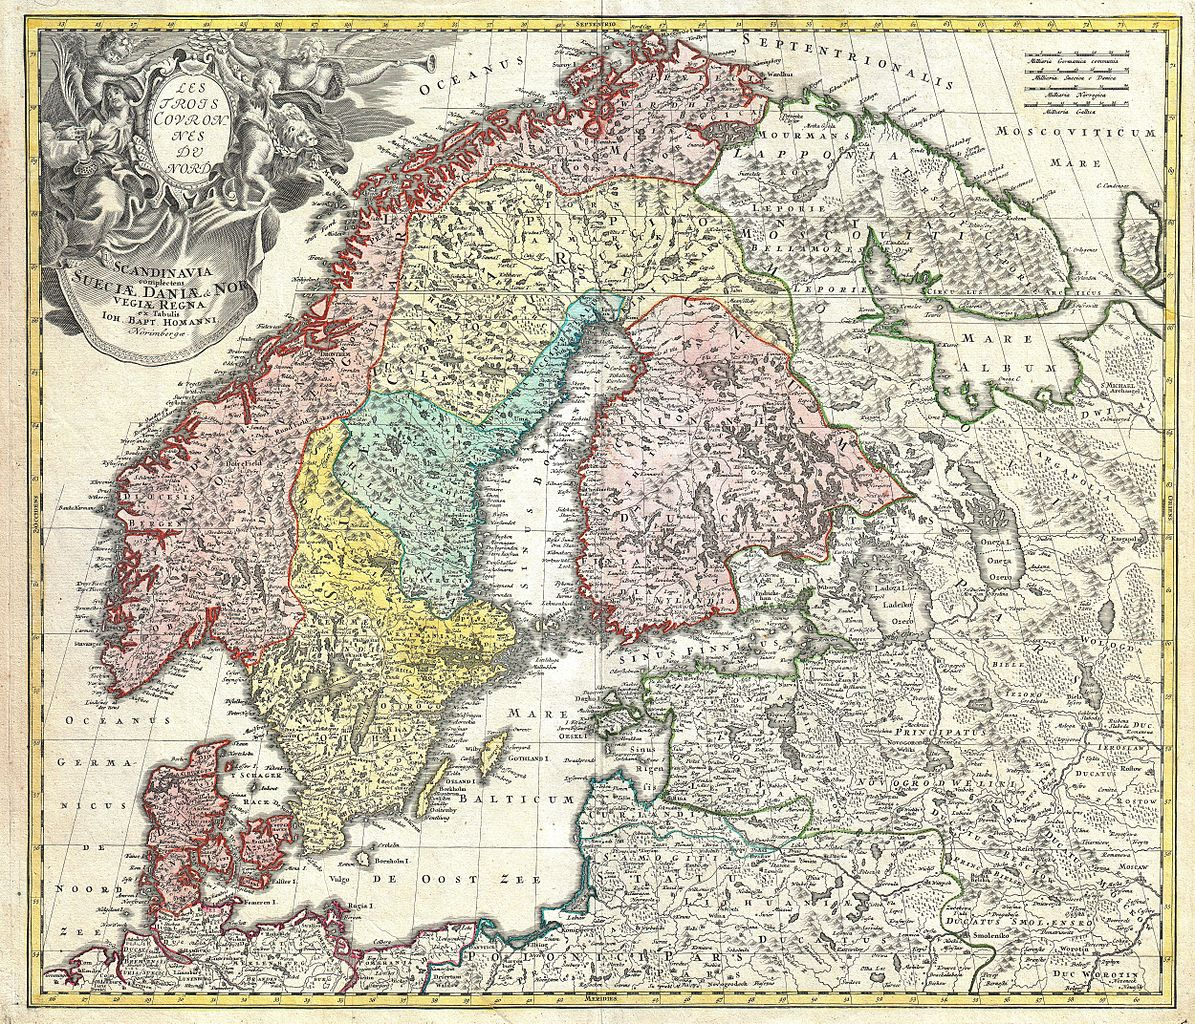 Picture of: File 1730 Homann Map Of Scandinavia Norway Sweden Denmark Finland And The Baltics Geographicus Scandinavia Homann 1730 Jpg Wikipedia